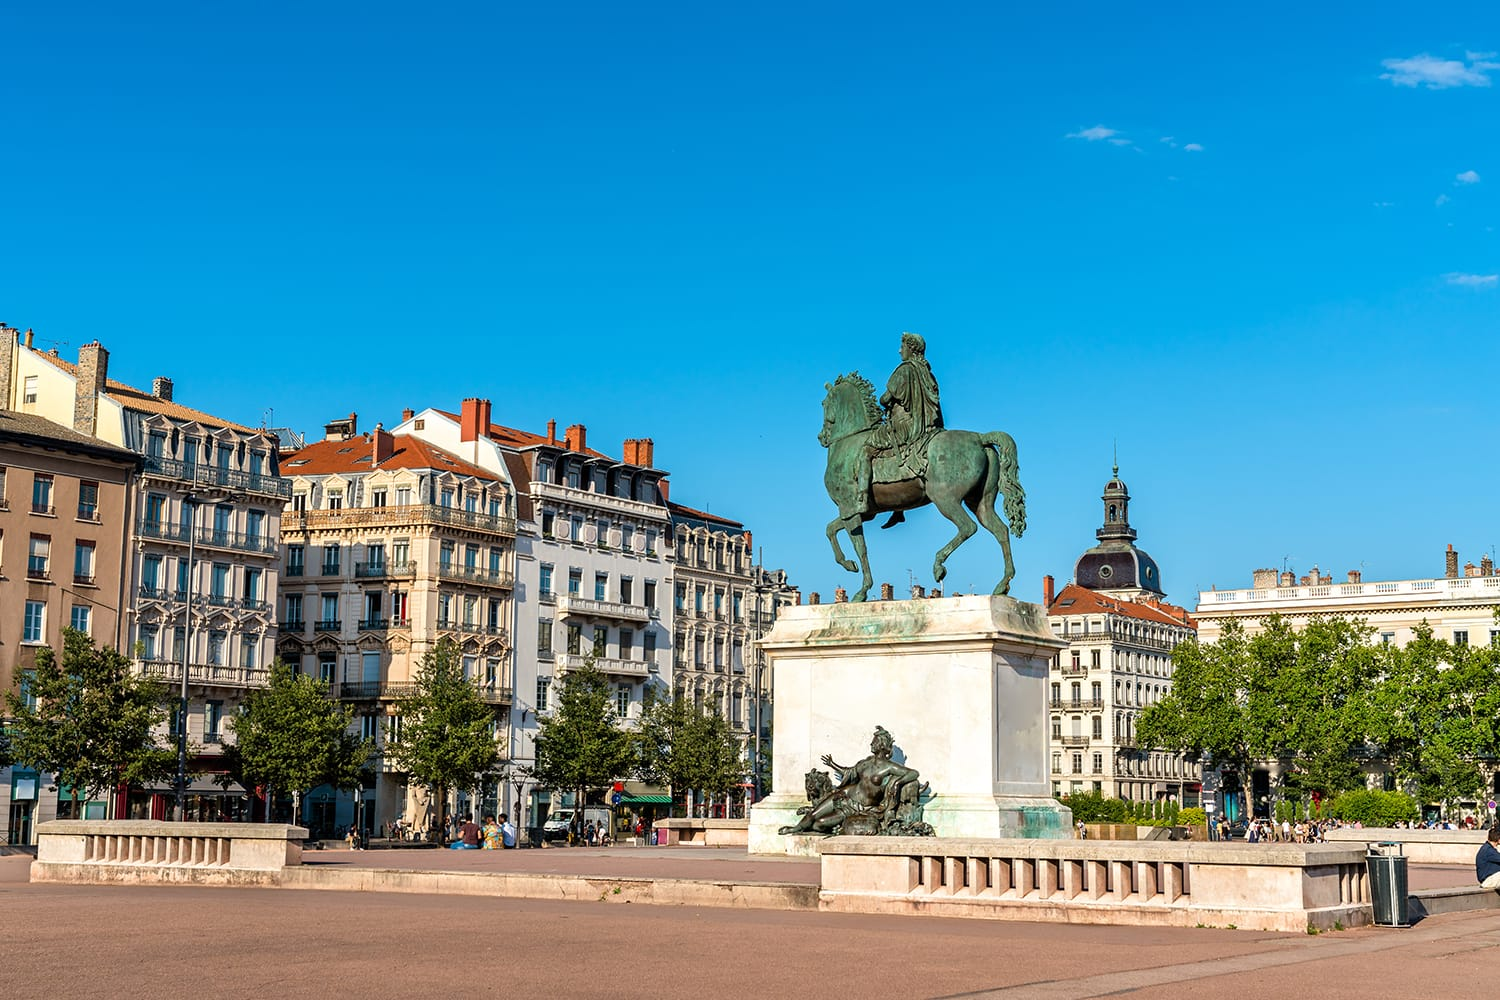 Equestrian statue of Louis XIV on Bellecour Square in Lyon, France